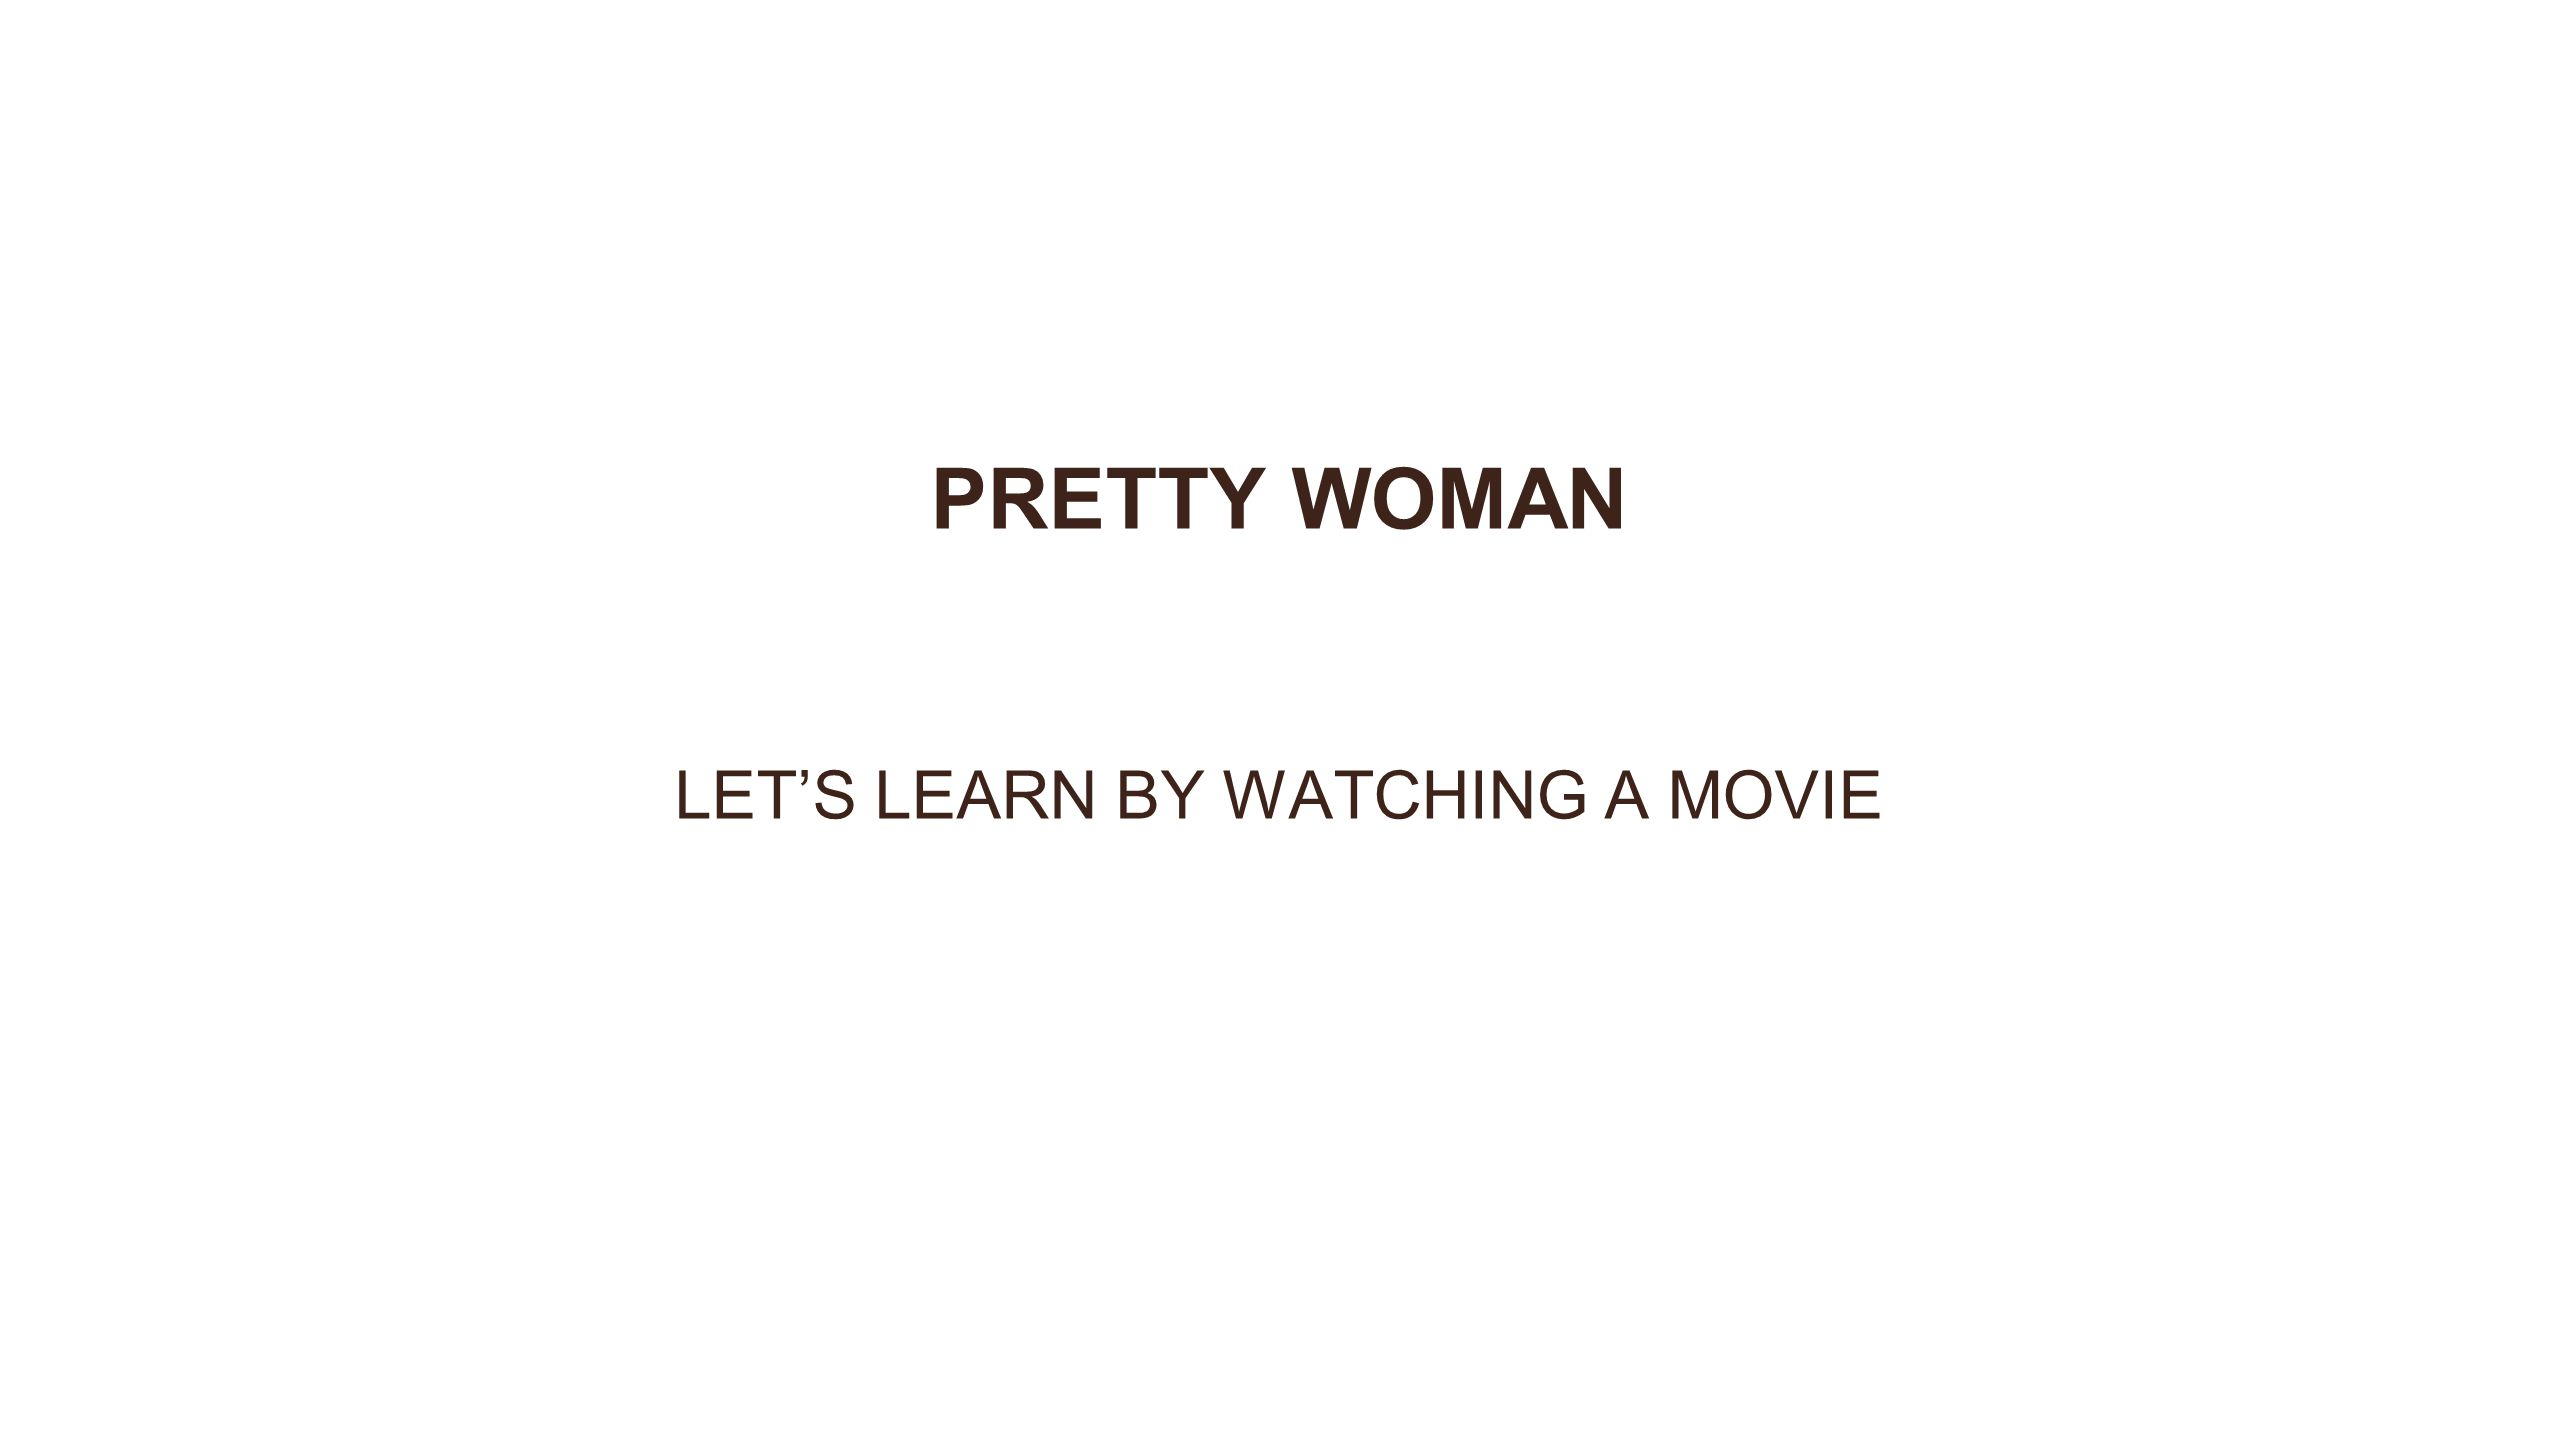 PRETTY WOMAN LET'S LEARN BY WATCHING A MOVIE